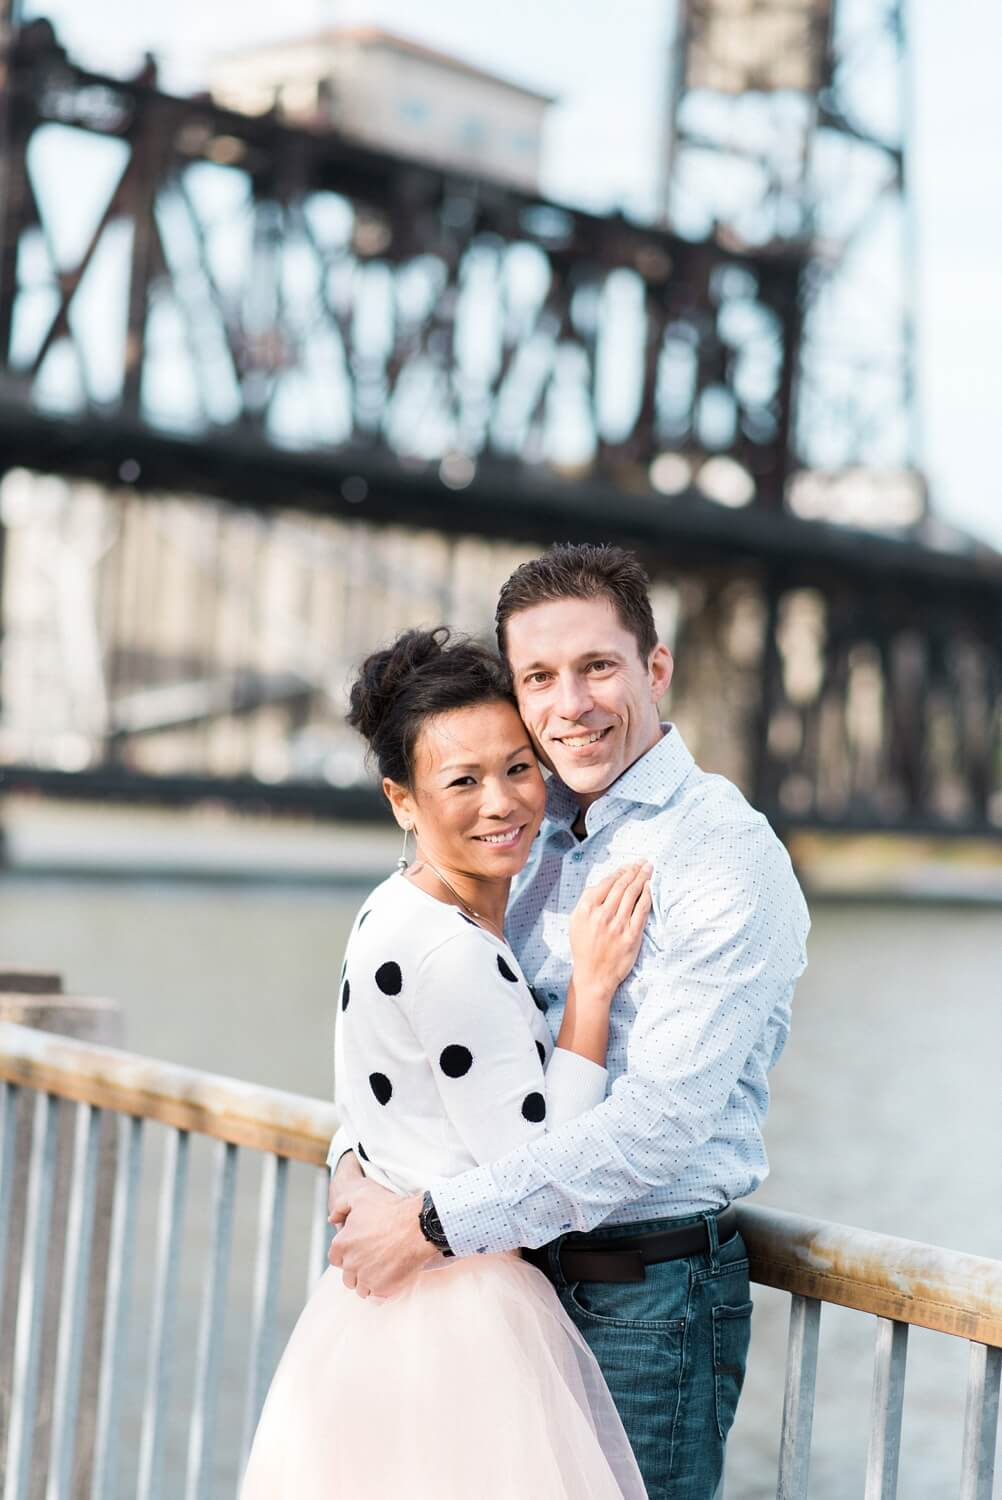 portland-waterfront-engagement-cherry-blossom-cathedral-park-sokhorn-jay-093_cr.jpg